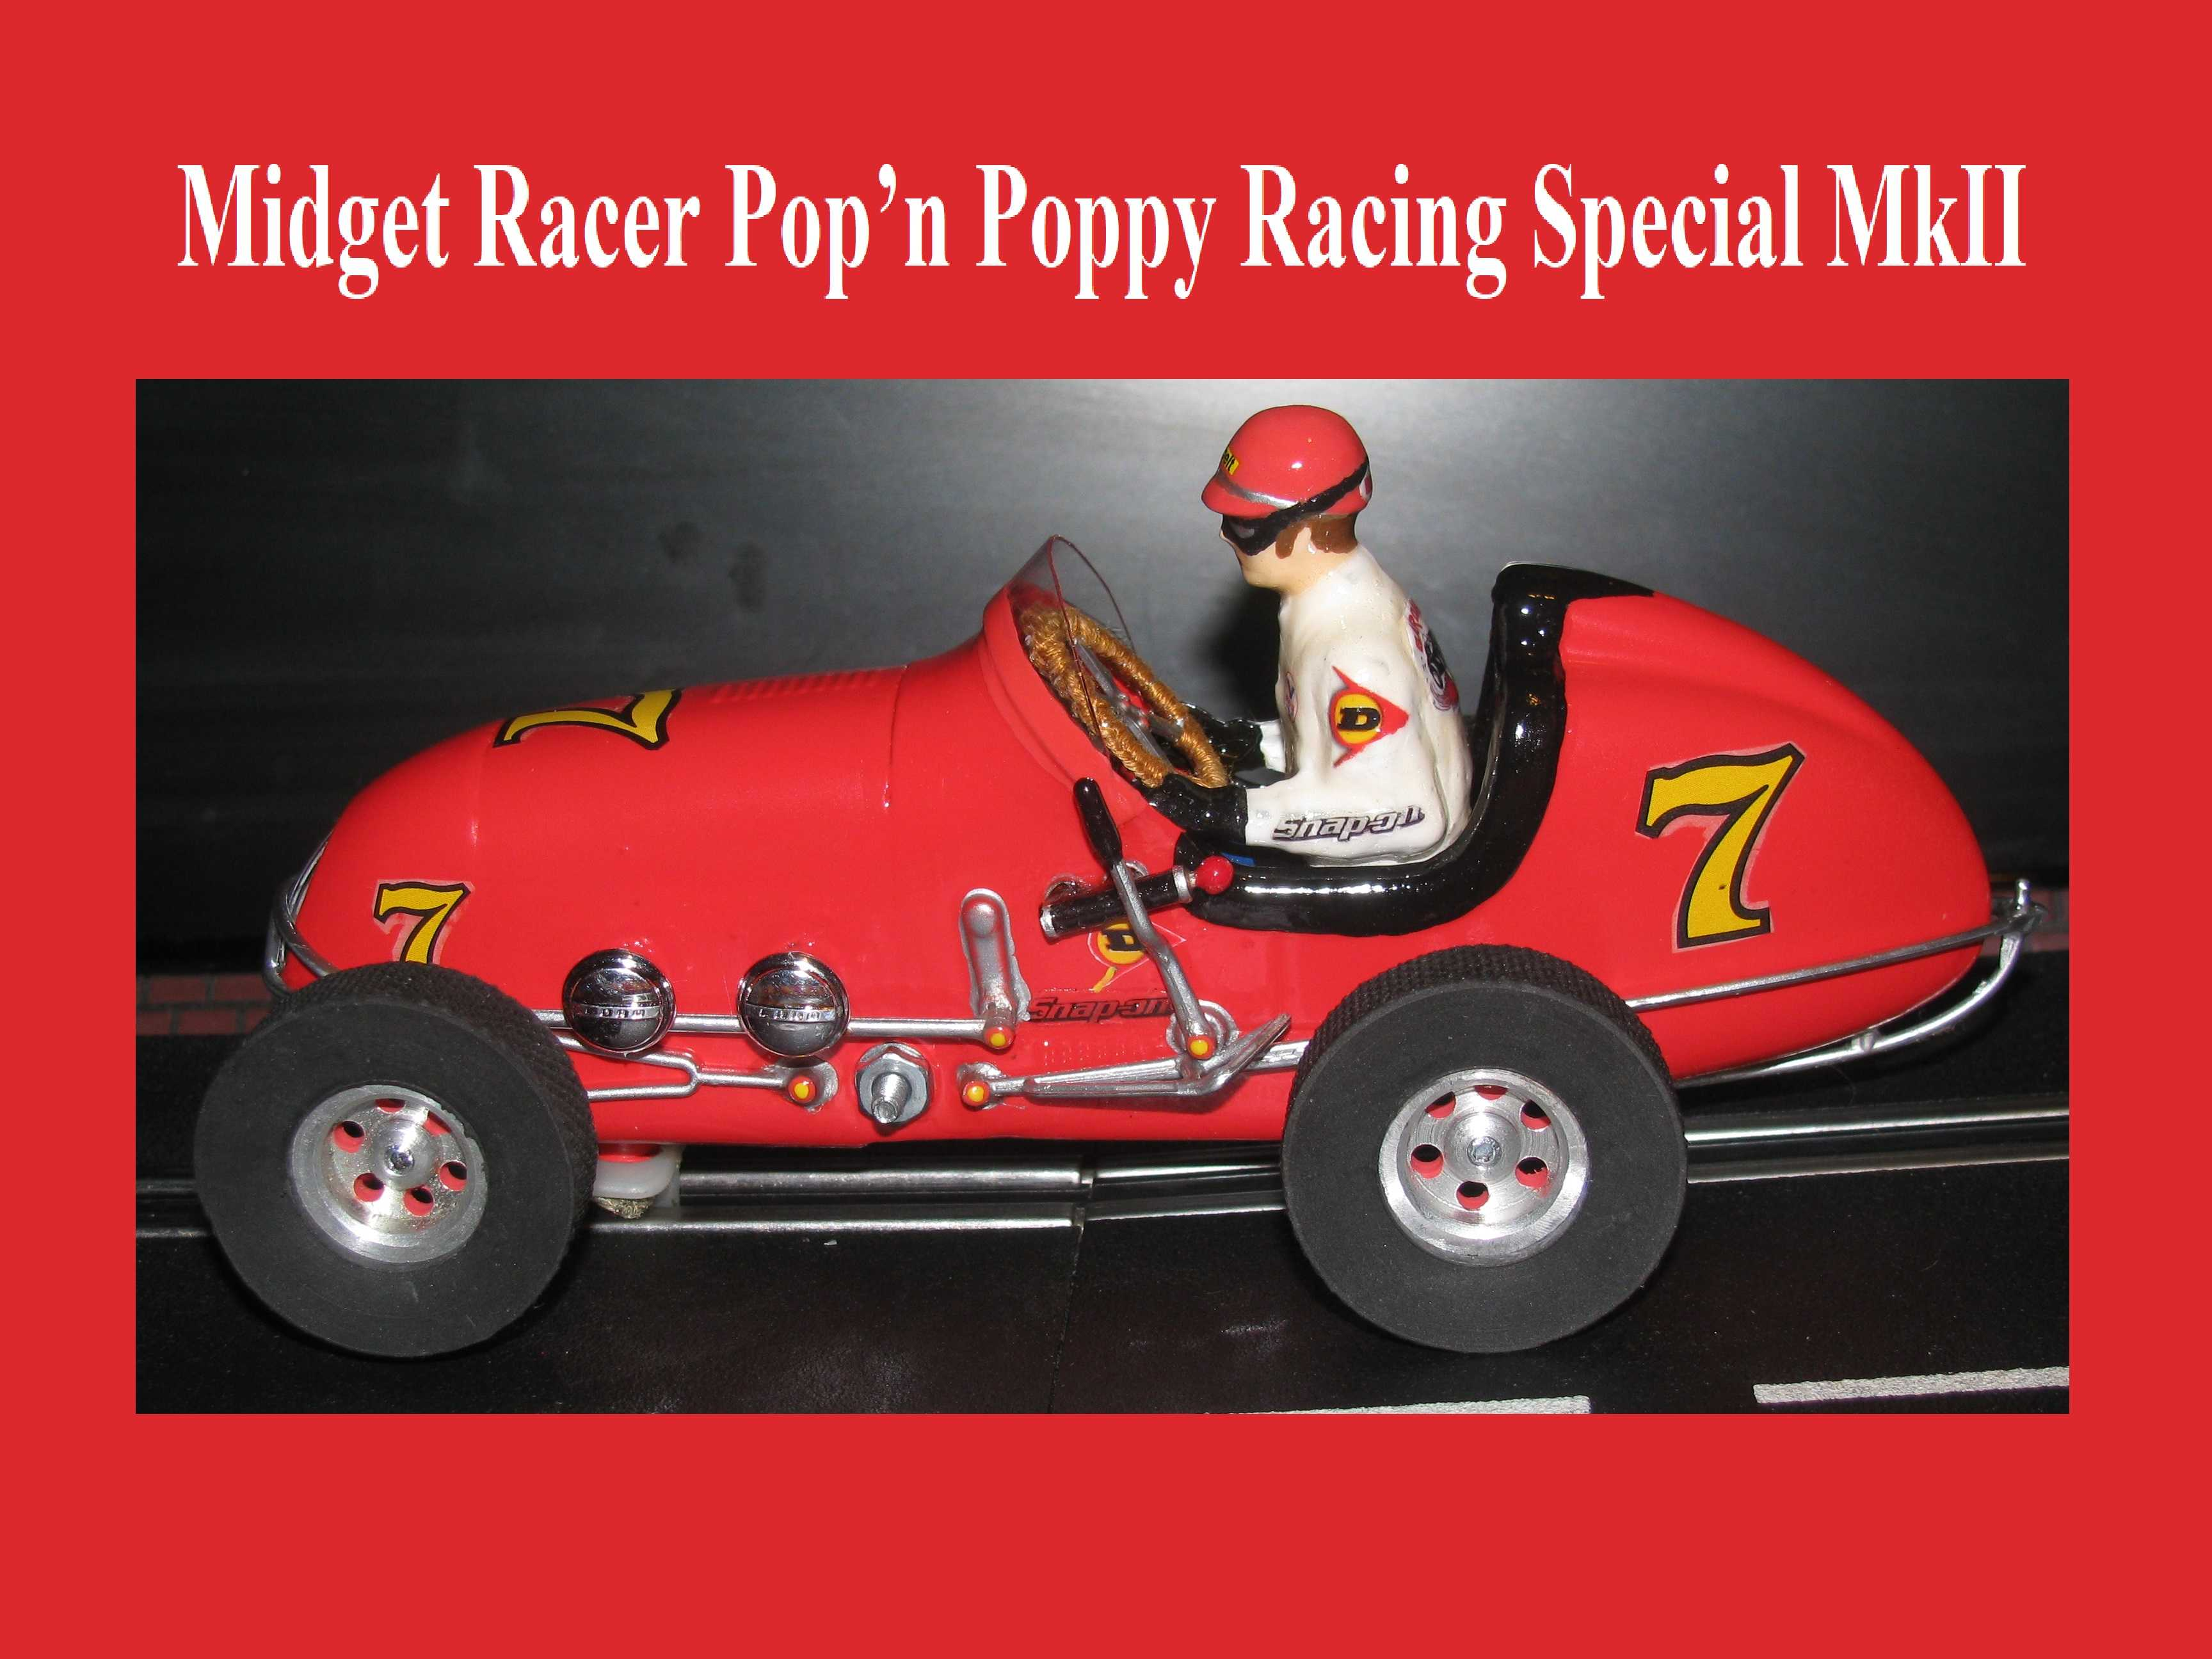 * SALE * Monogram Midget Racer Dunlop Racing Special MkII Slot Car 1/24 Scale (Poppy Seed Red Satin)